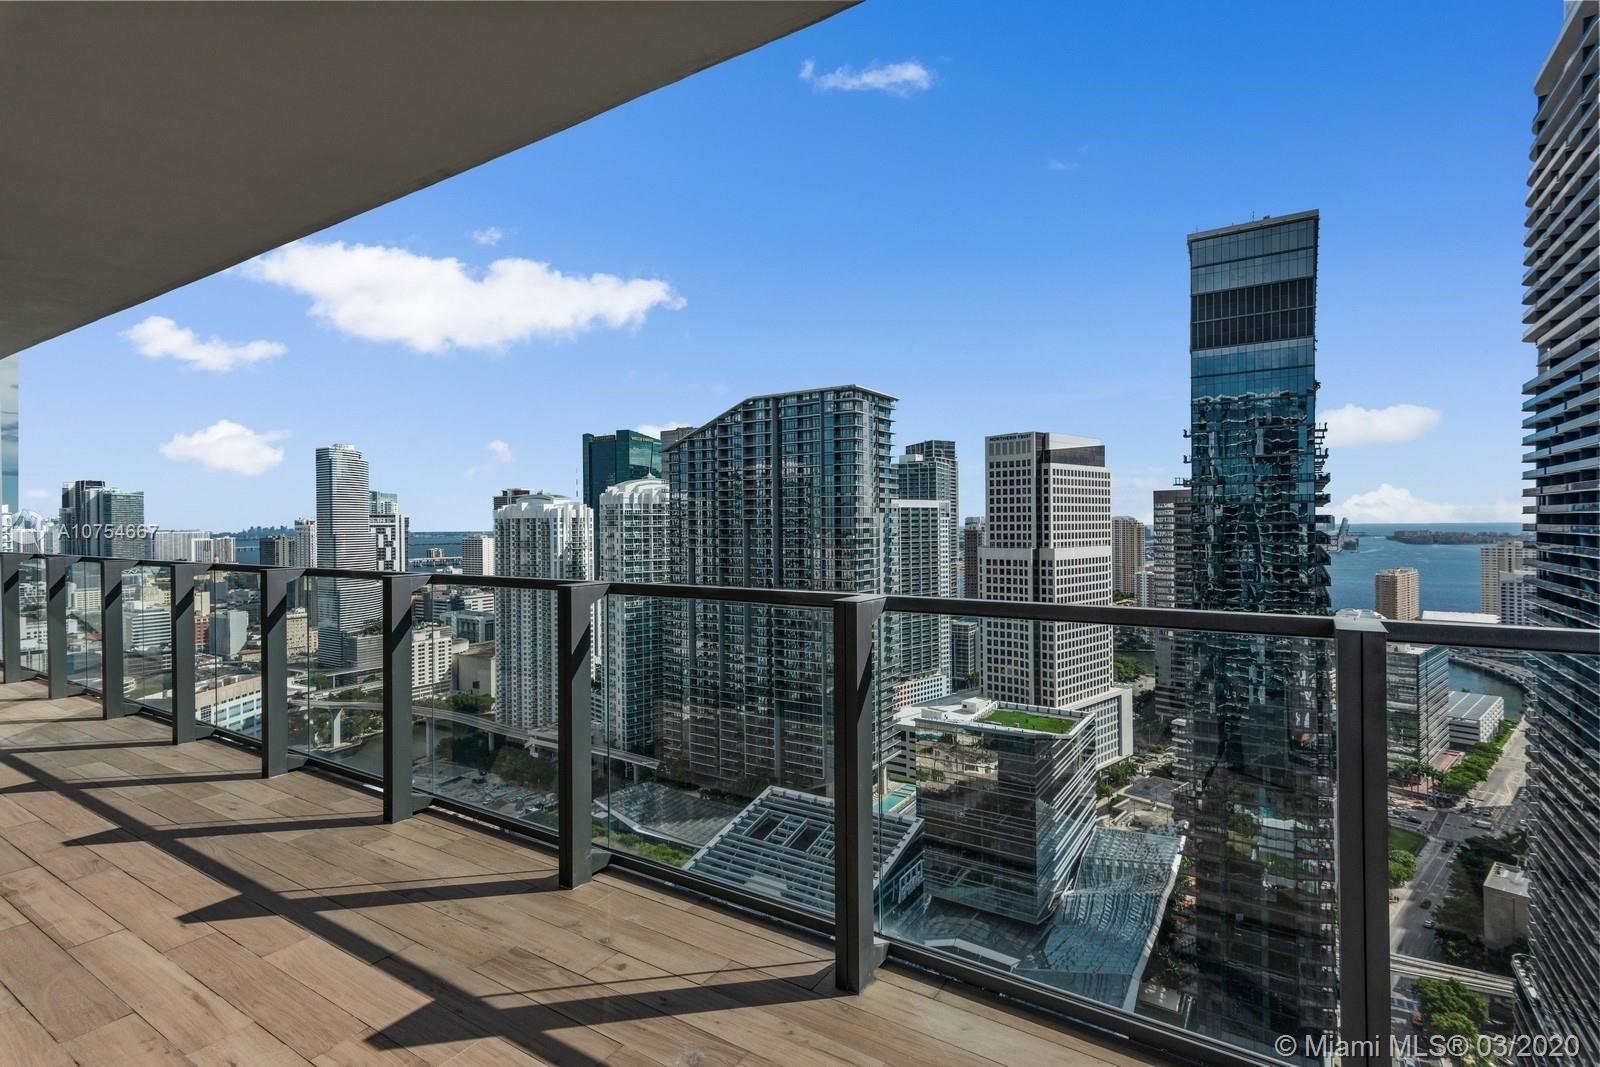 Rise Brickell City Centre #3401 - 88 SW 7th St #3401, Miami, FL 33130